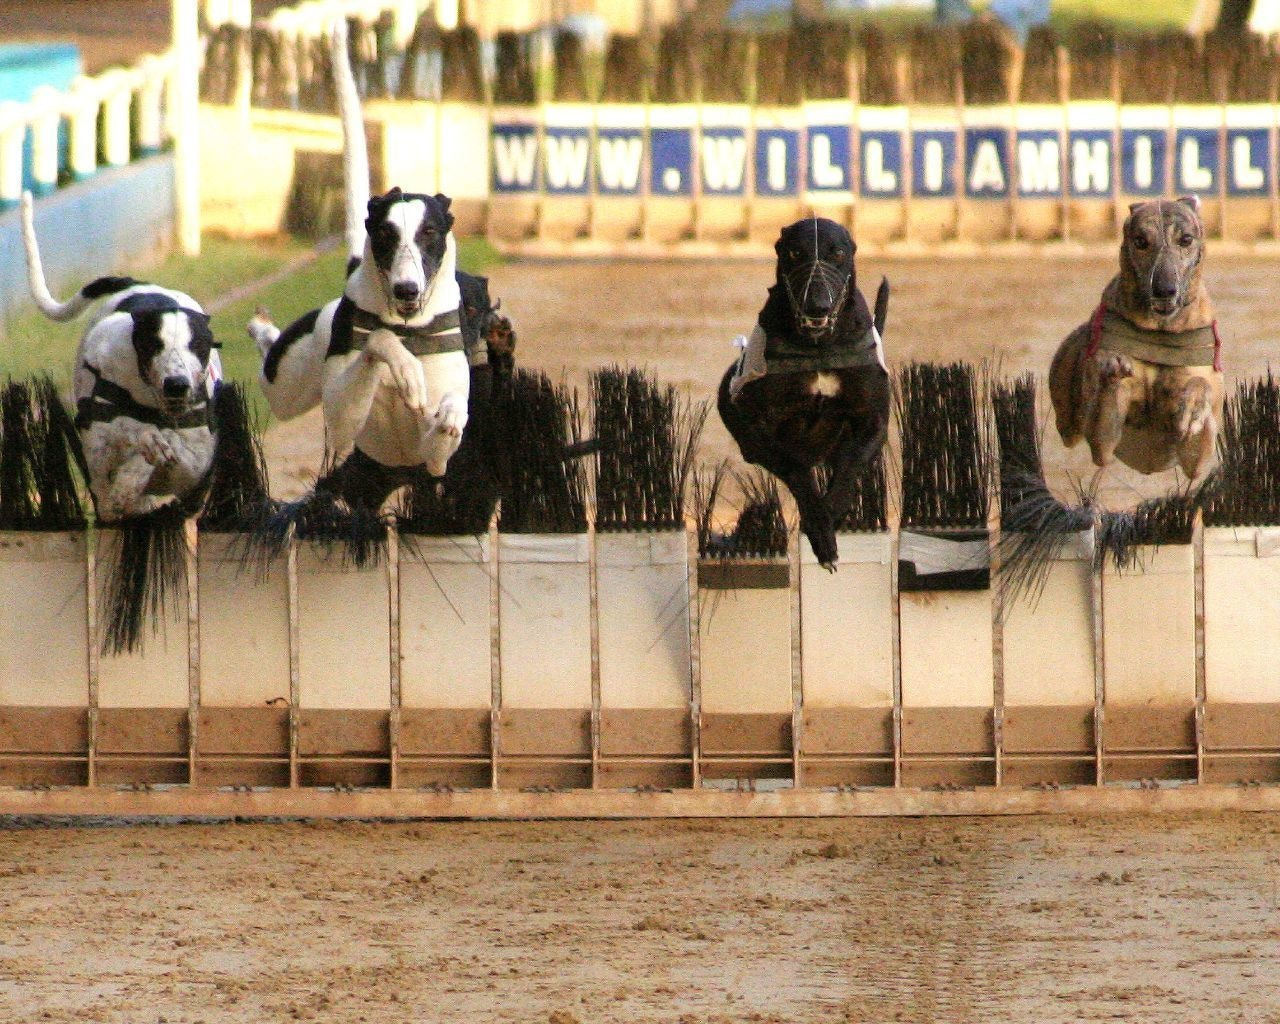 Dog racing at Wimbledon Stadium